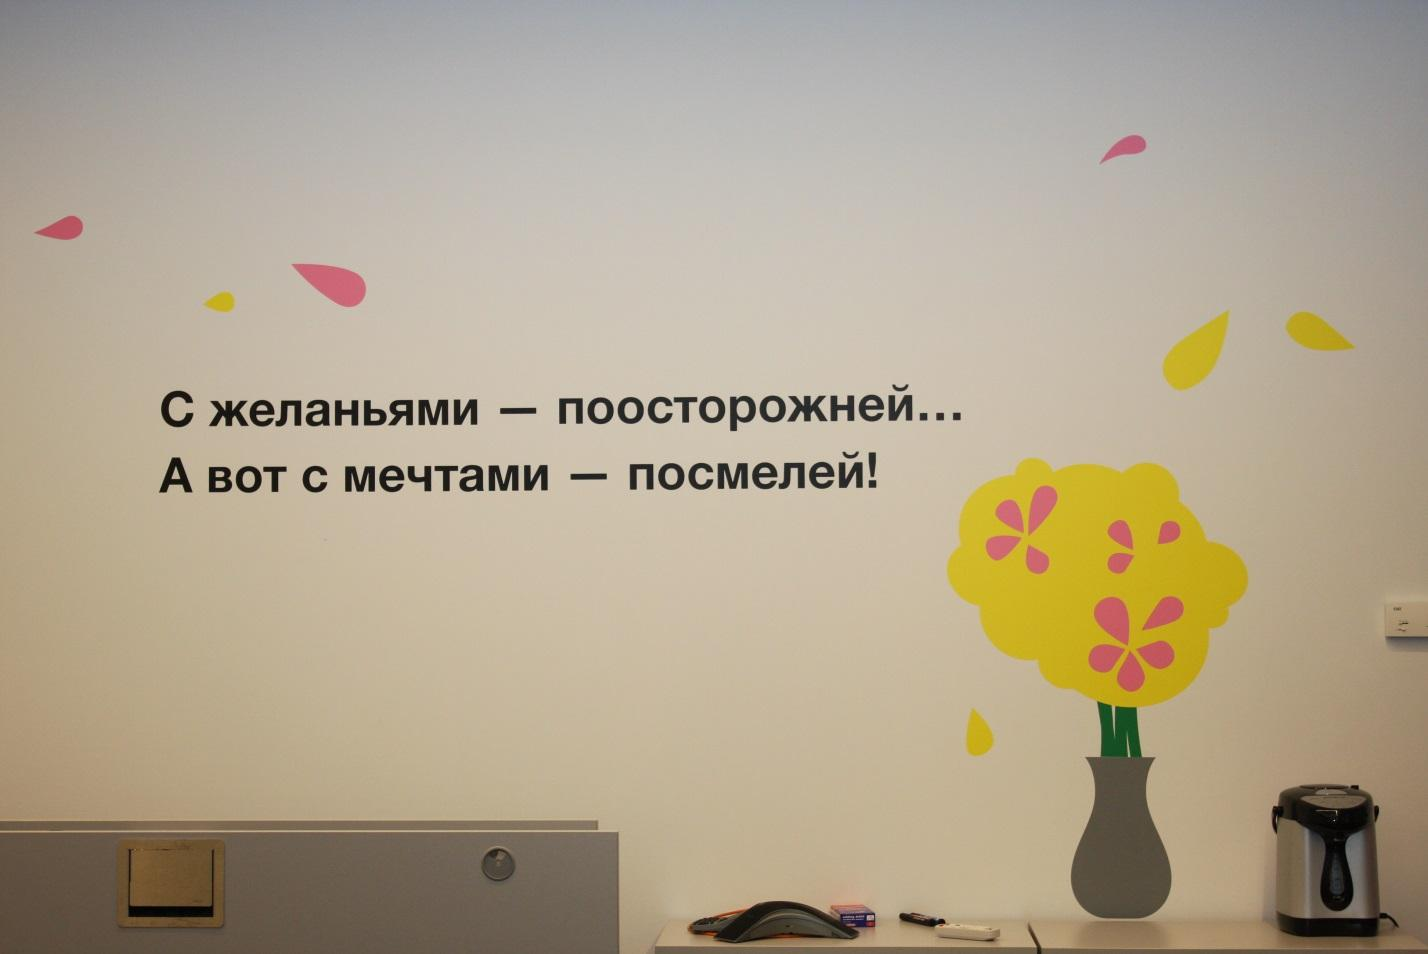 C:\Users\dmitriy.portnykh\Documents\Photos\Office\IMG_4975.JPG